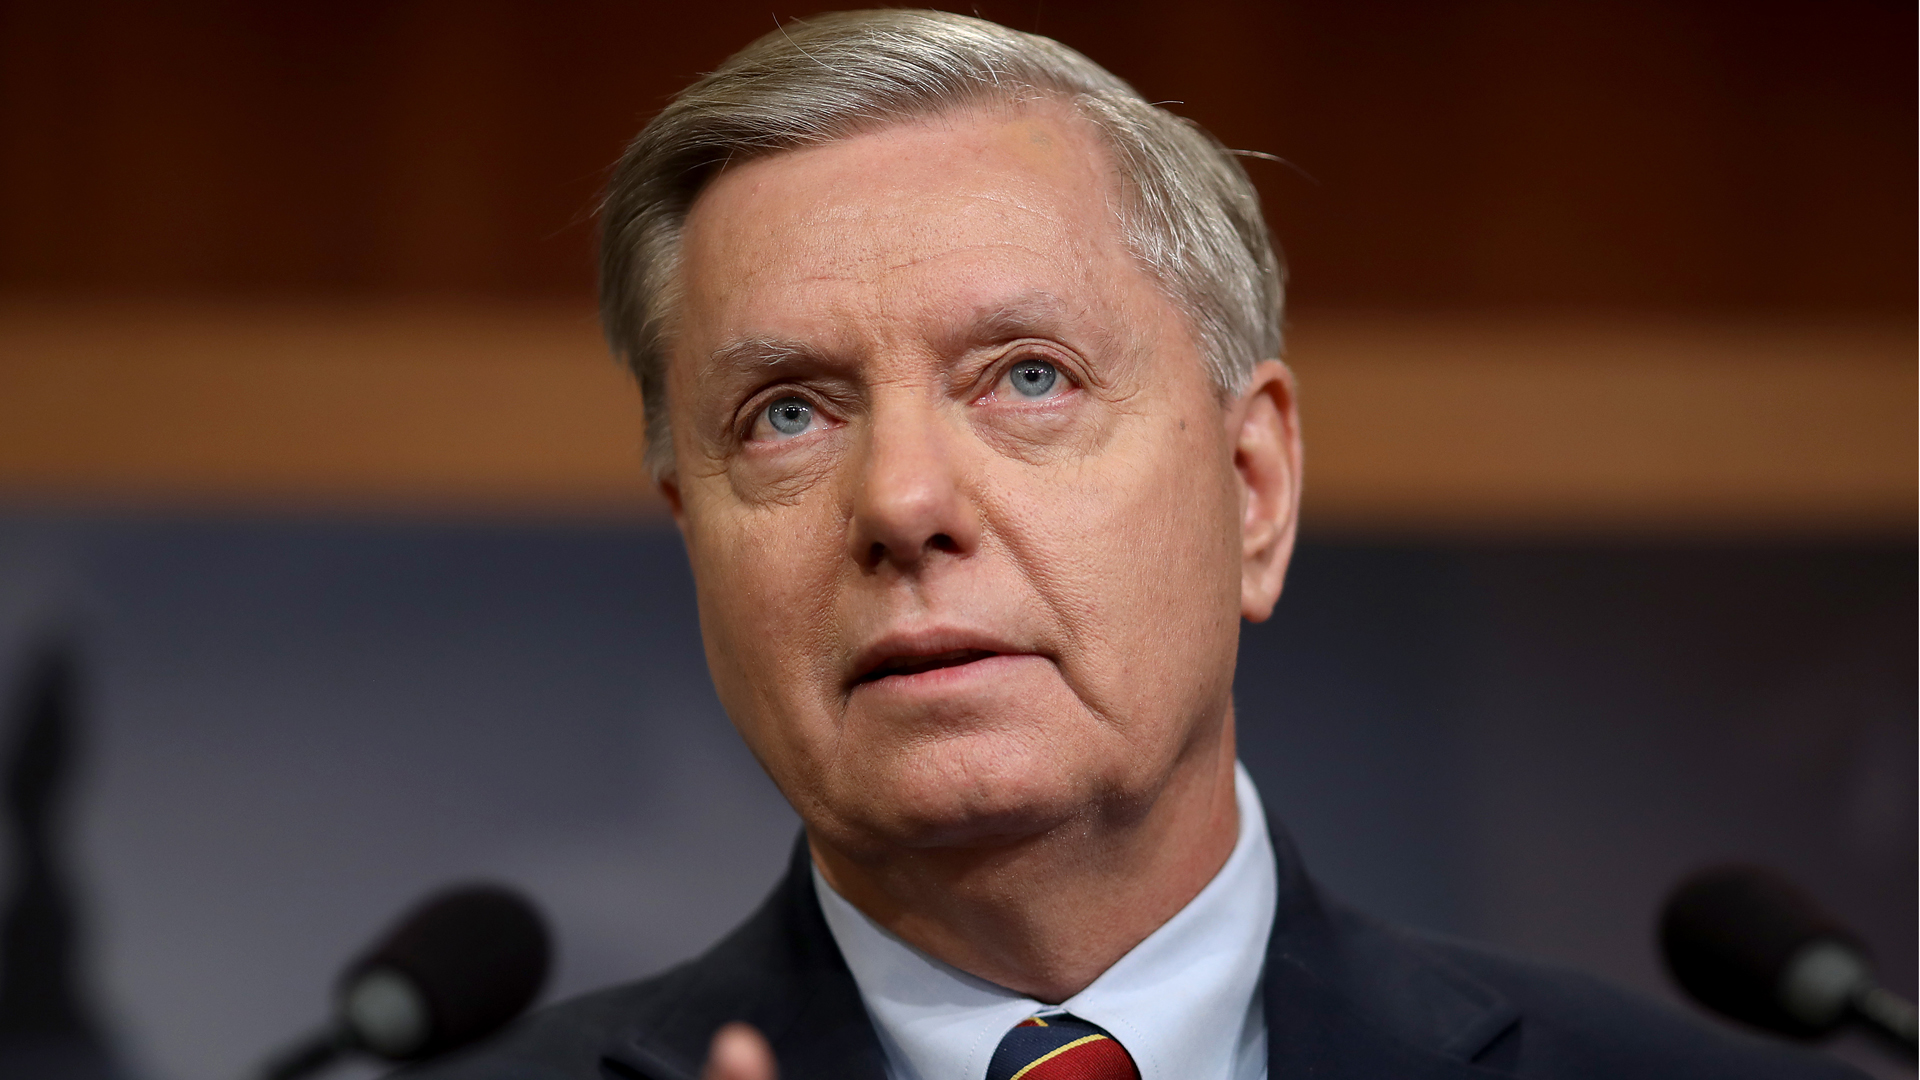 Sen. Lindsey Graham speaks out against Trump's decision to remove U.S. military forces from Syria during a press conference at the U.S. Capitol on Dec. 20, 2018, in Washington, D.C. (Credit: Win McNamee/Getty Images)